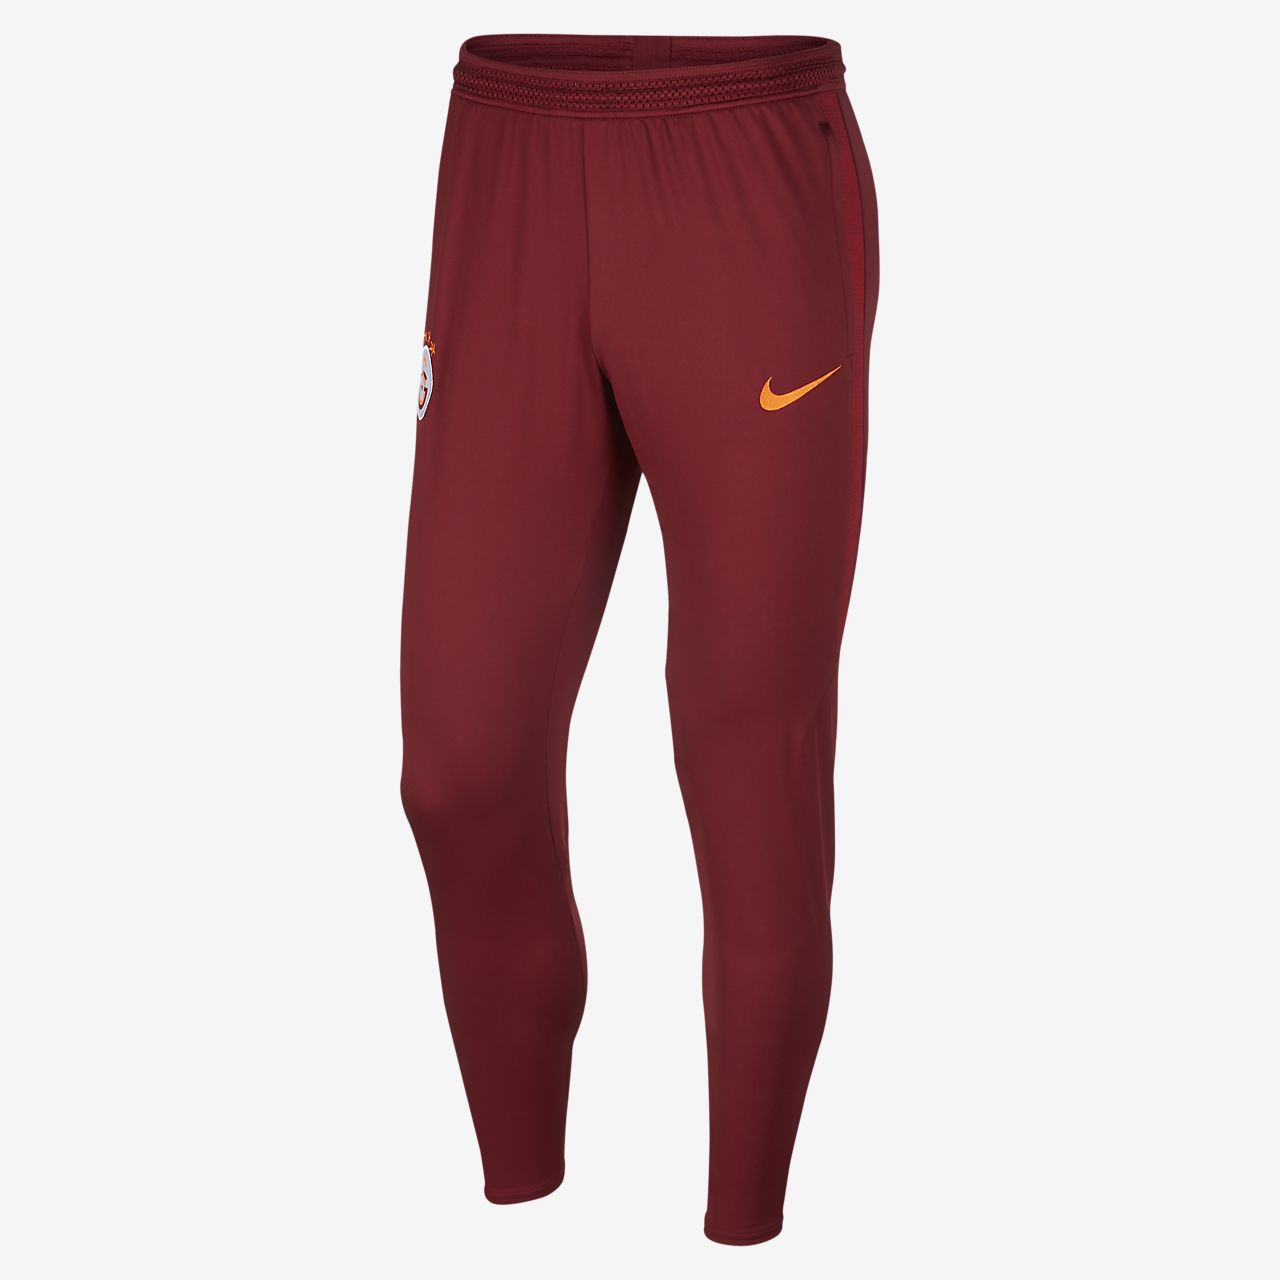 Nike Dri-FIT Galatasaray Strike Men's Football Pants